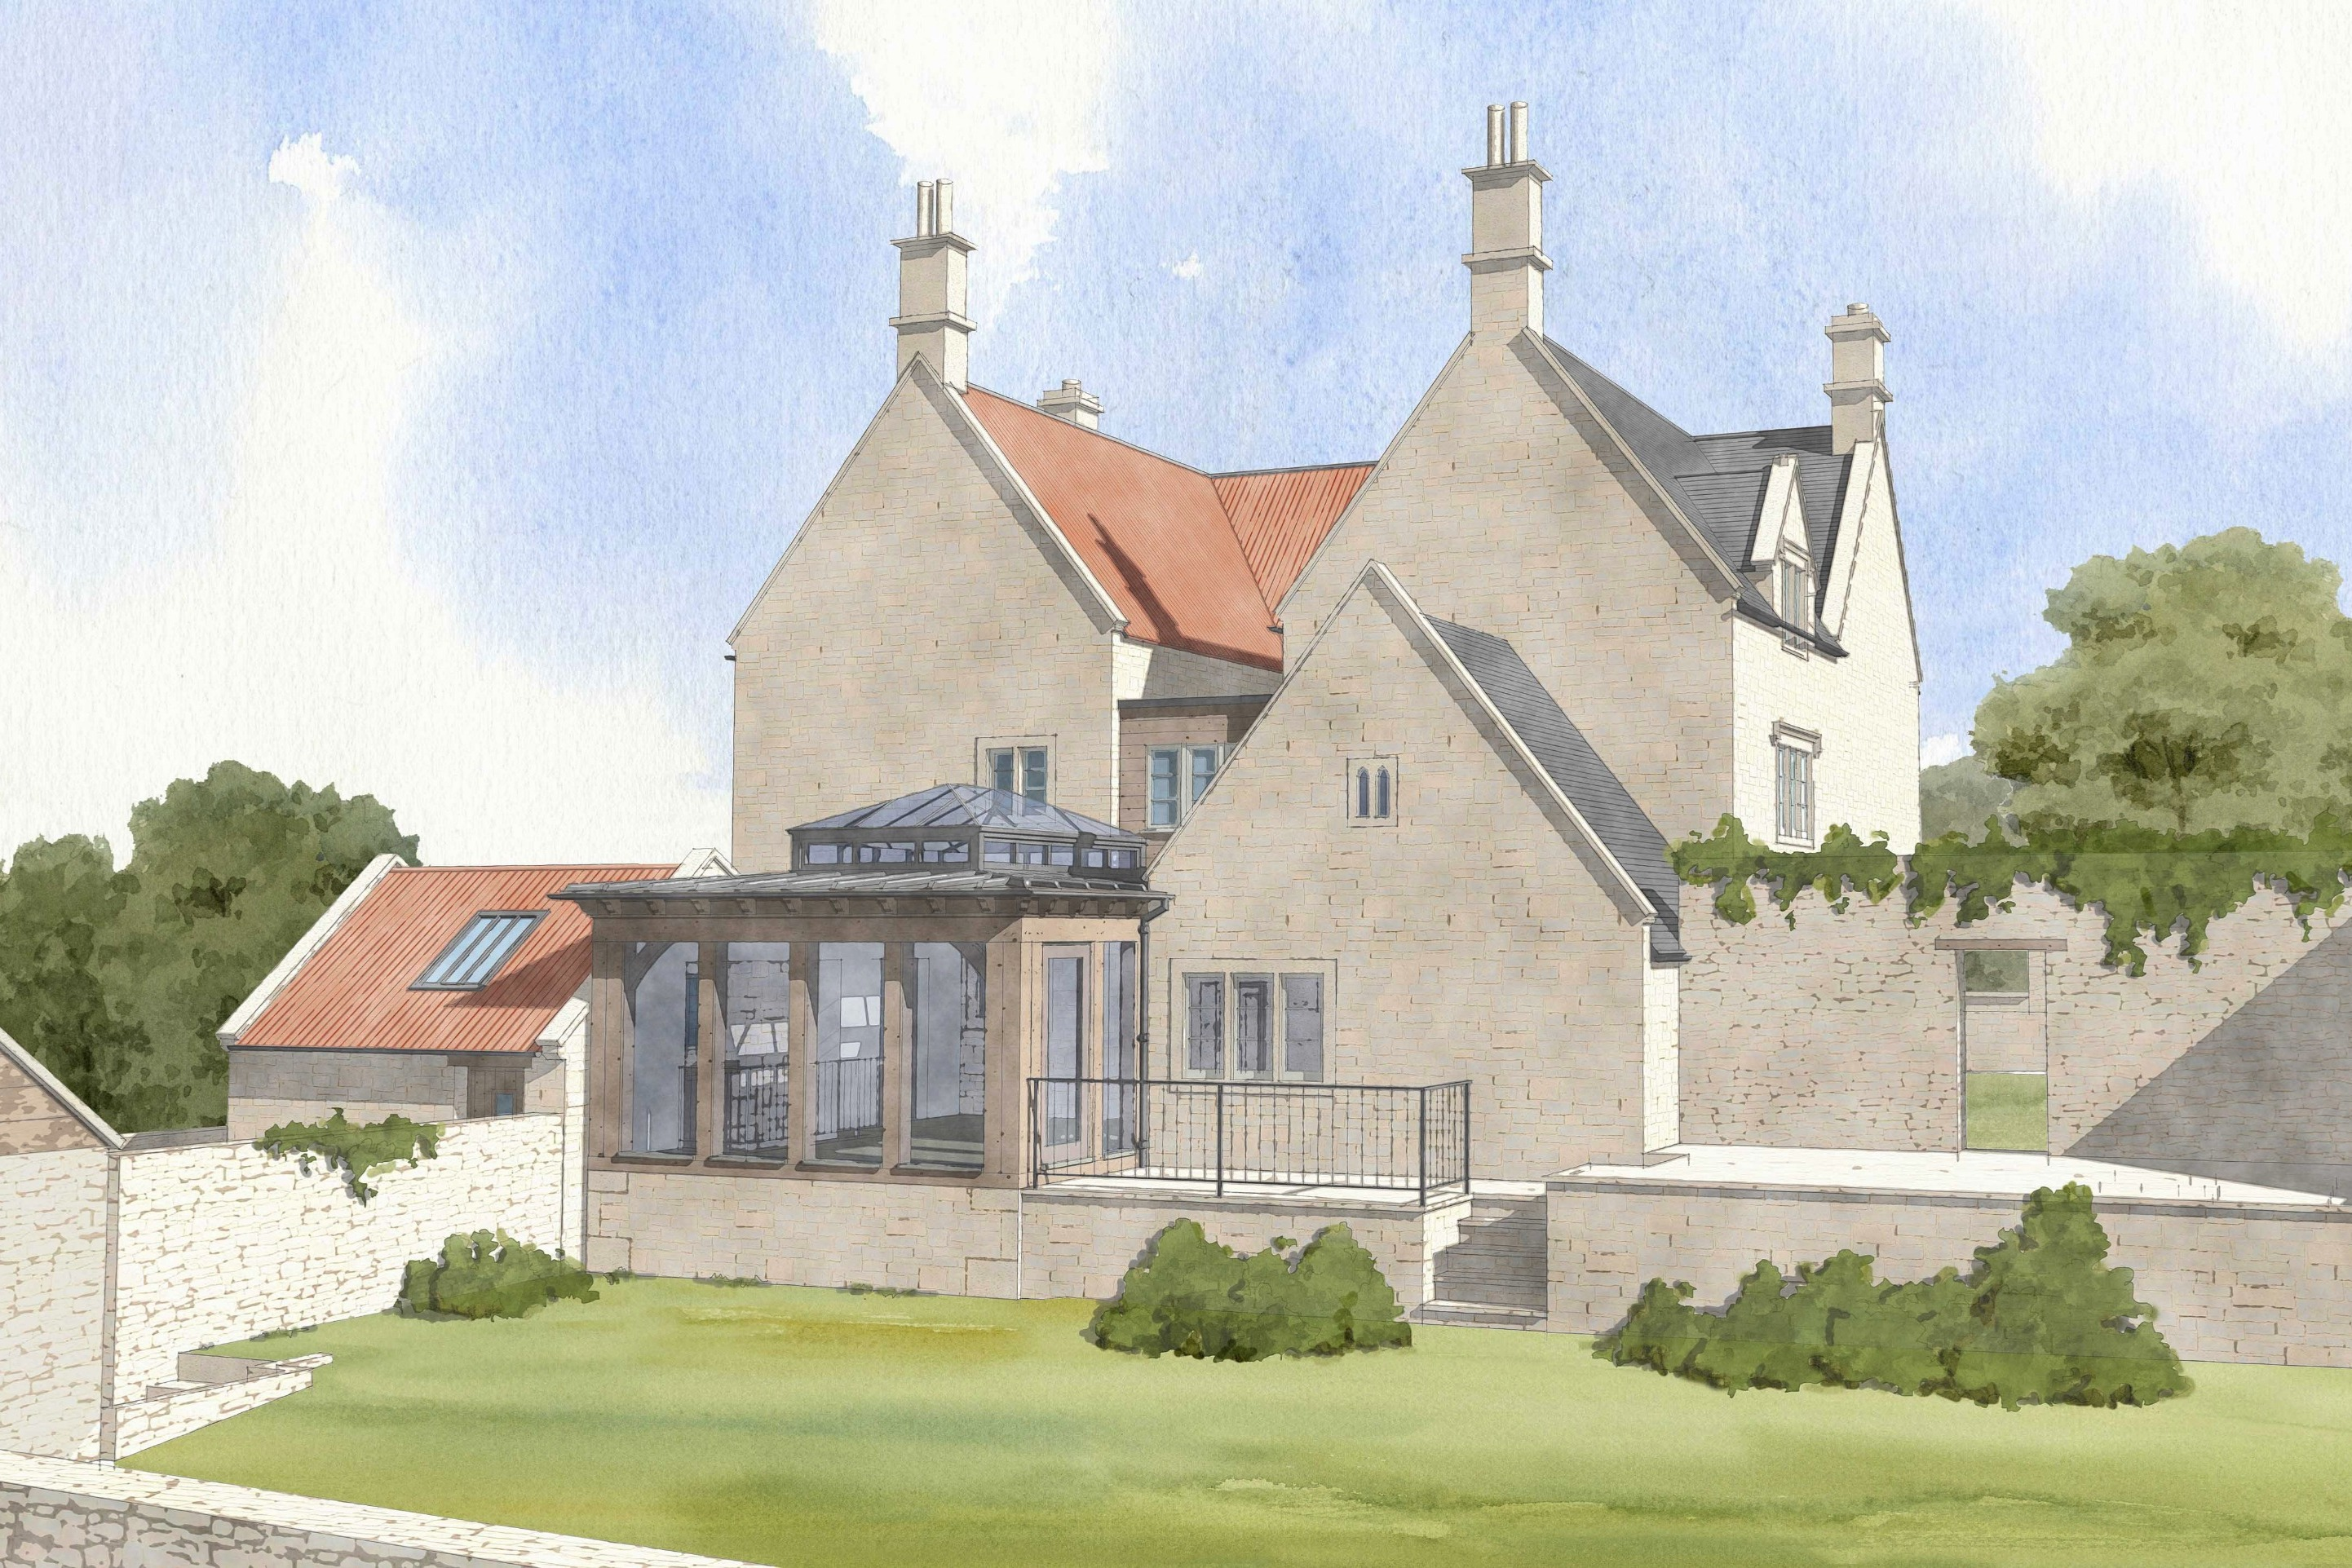 Conservation and extensions to a listed House in the Cotswolds near Box, Wiltshire